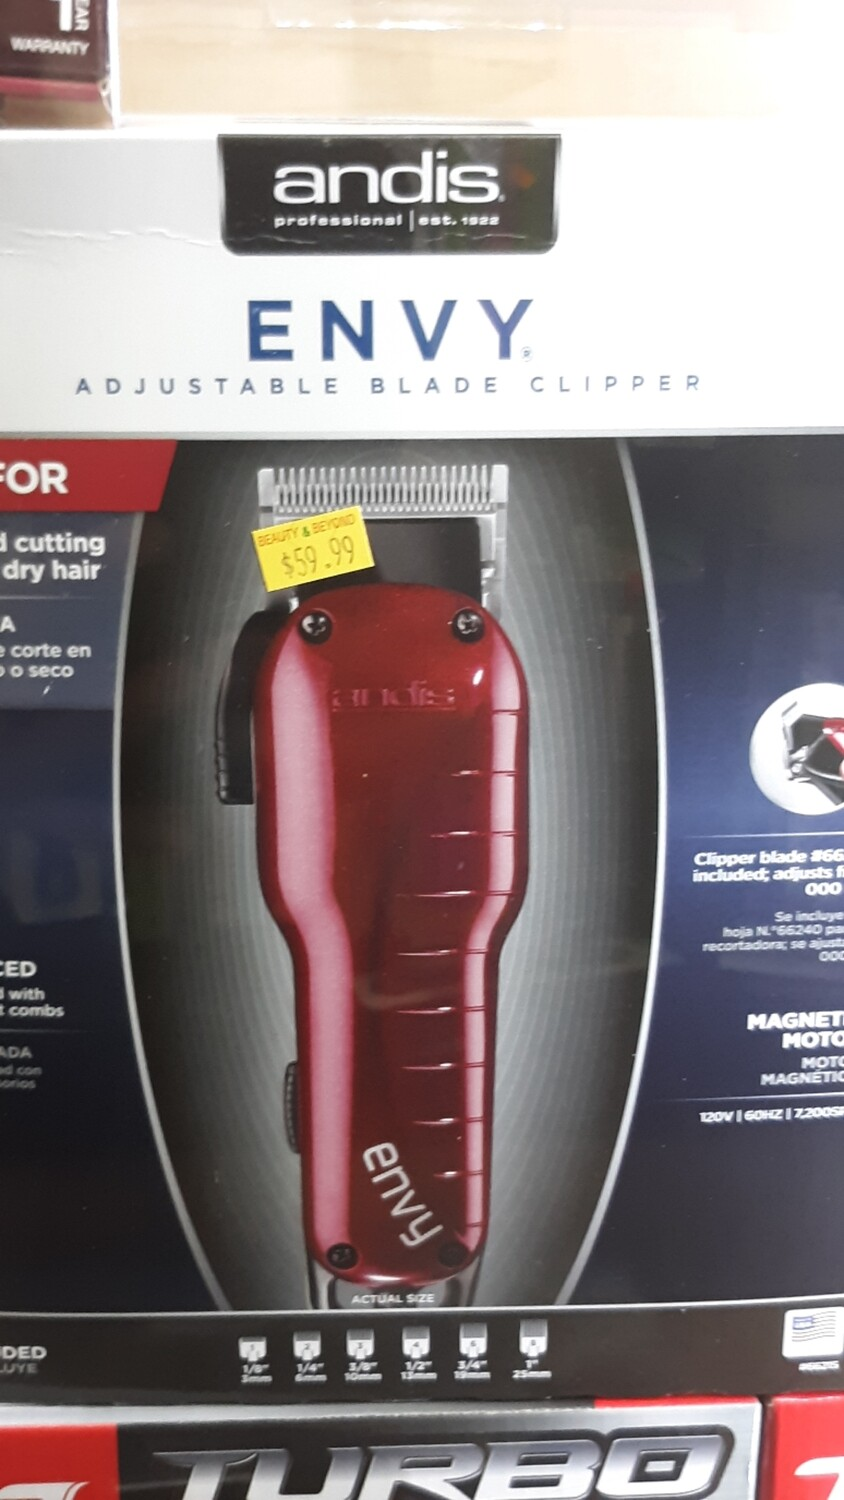 Andis Professional Envy Adjustable Blade Clipper